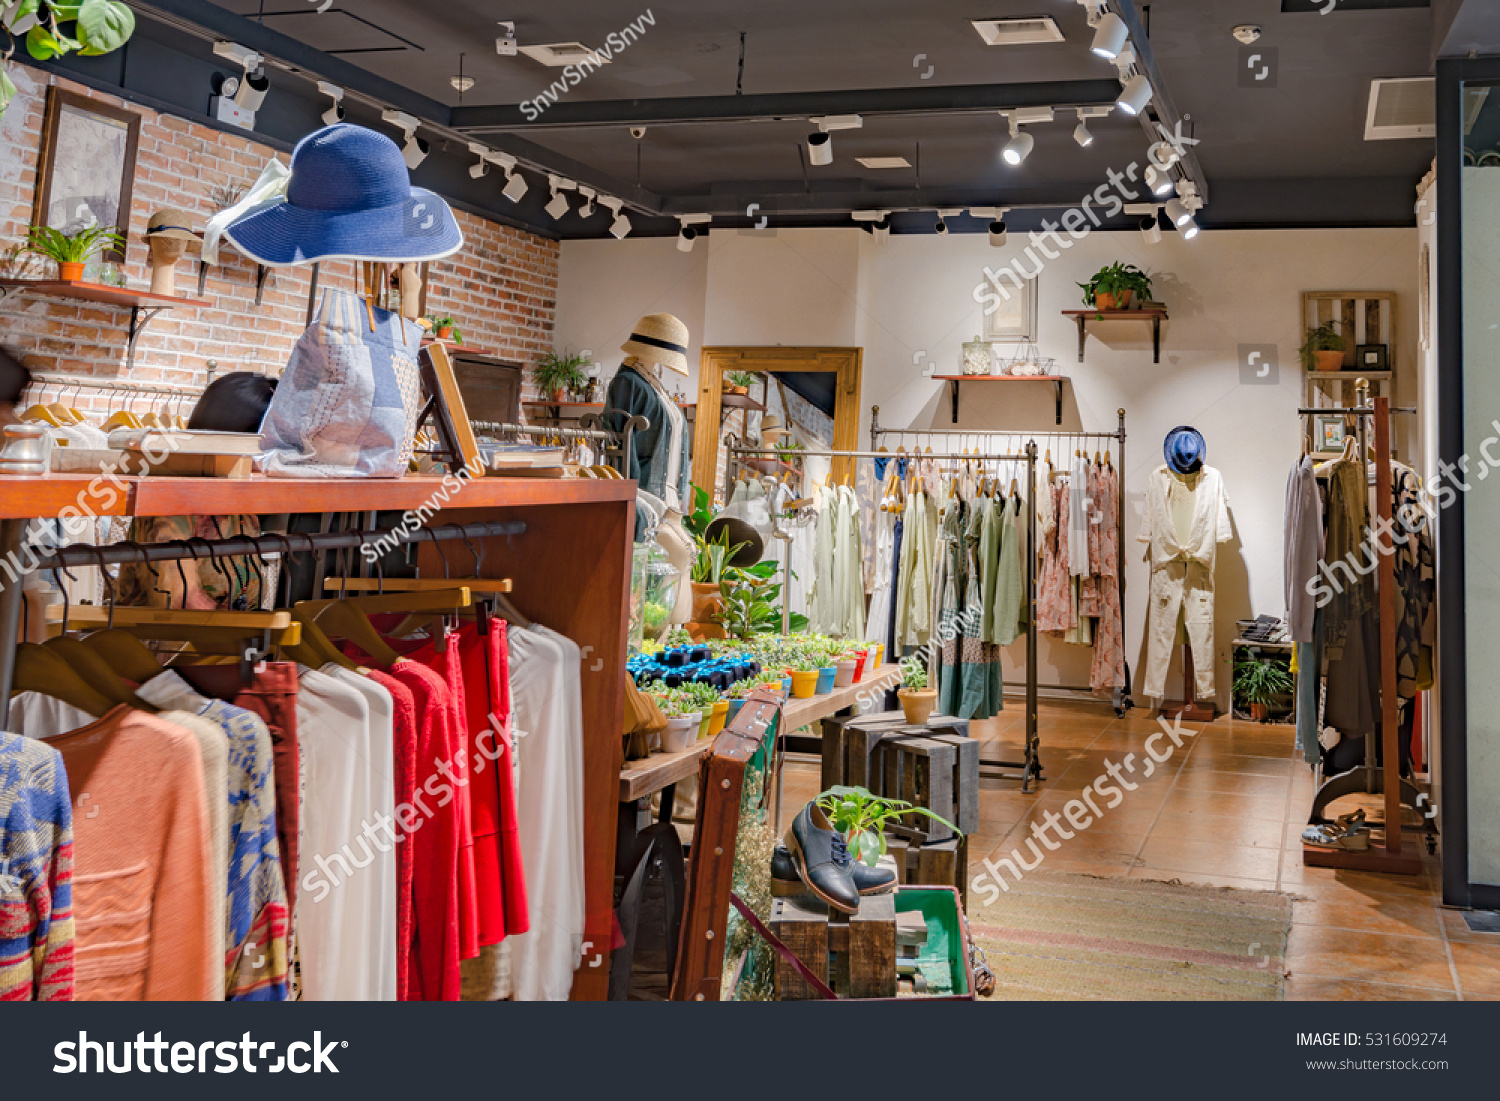 Clothing Store Clothes Stock Photo Edit Now 531609274 Shutterstock 0291 Kaos Giordano